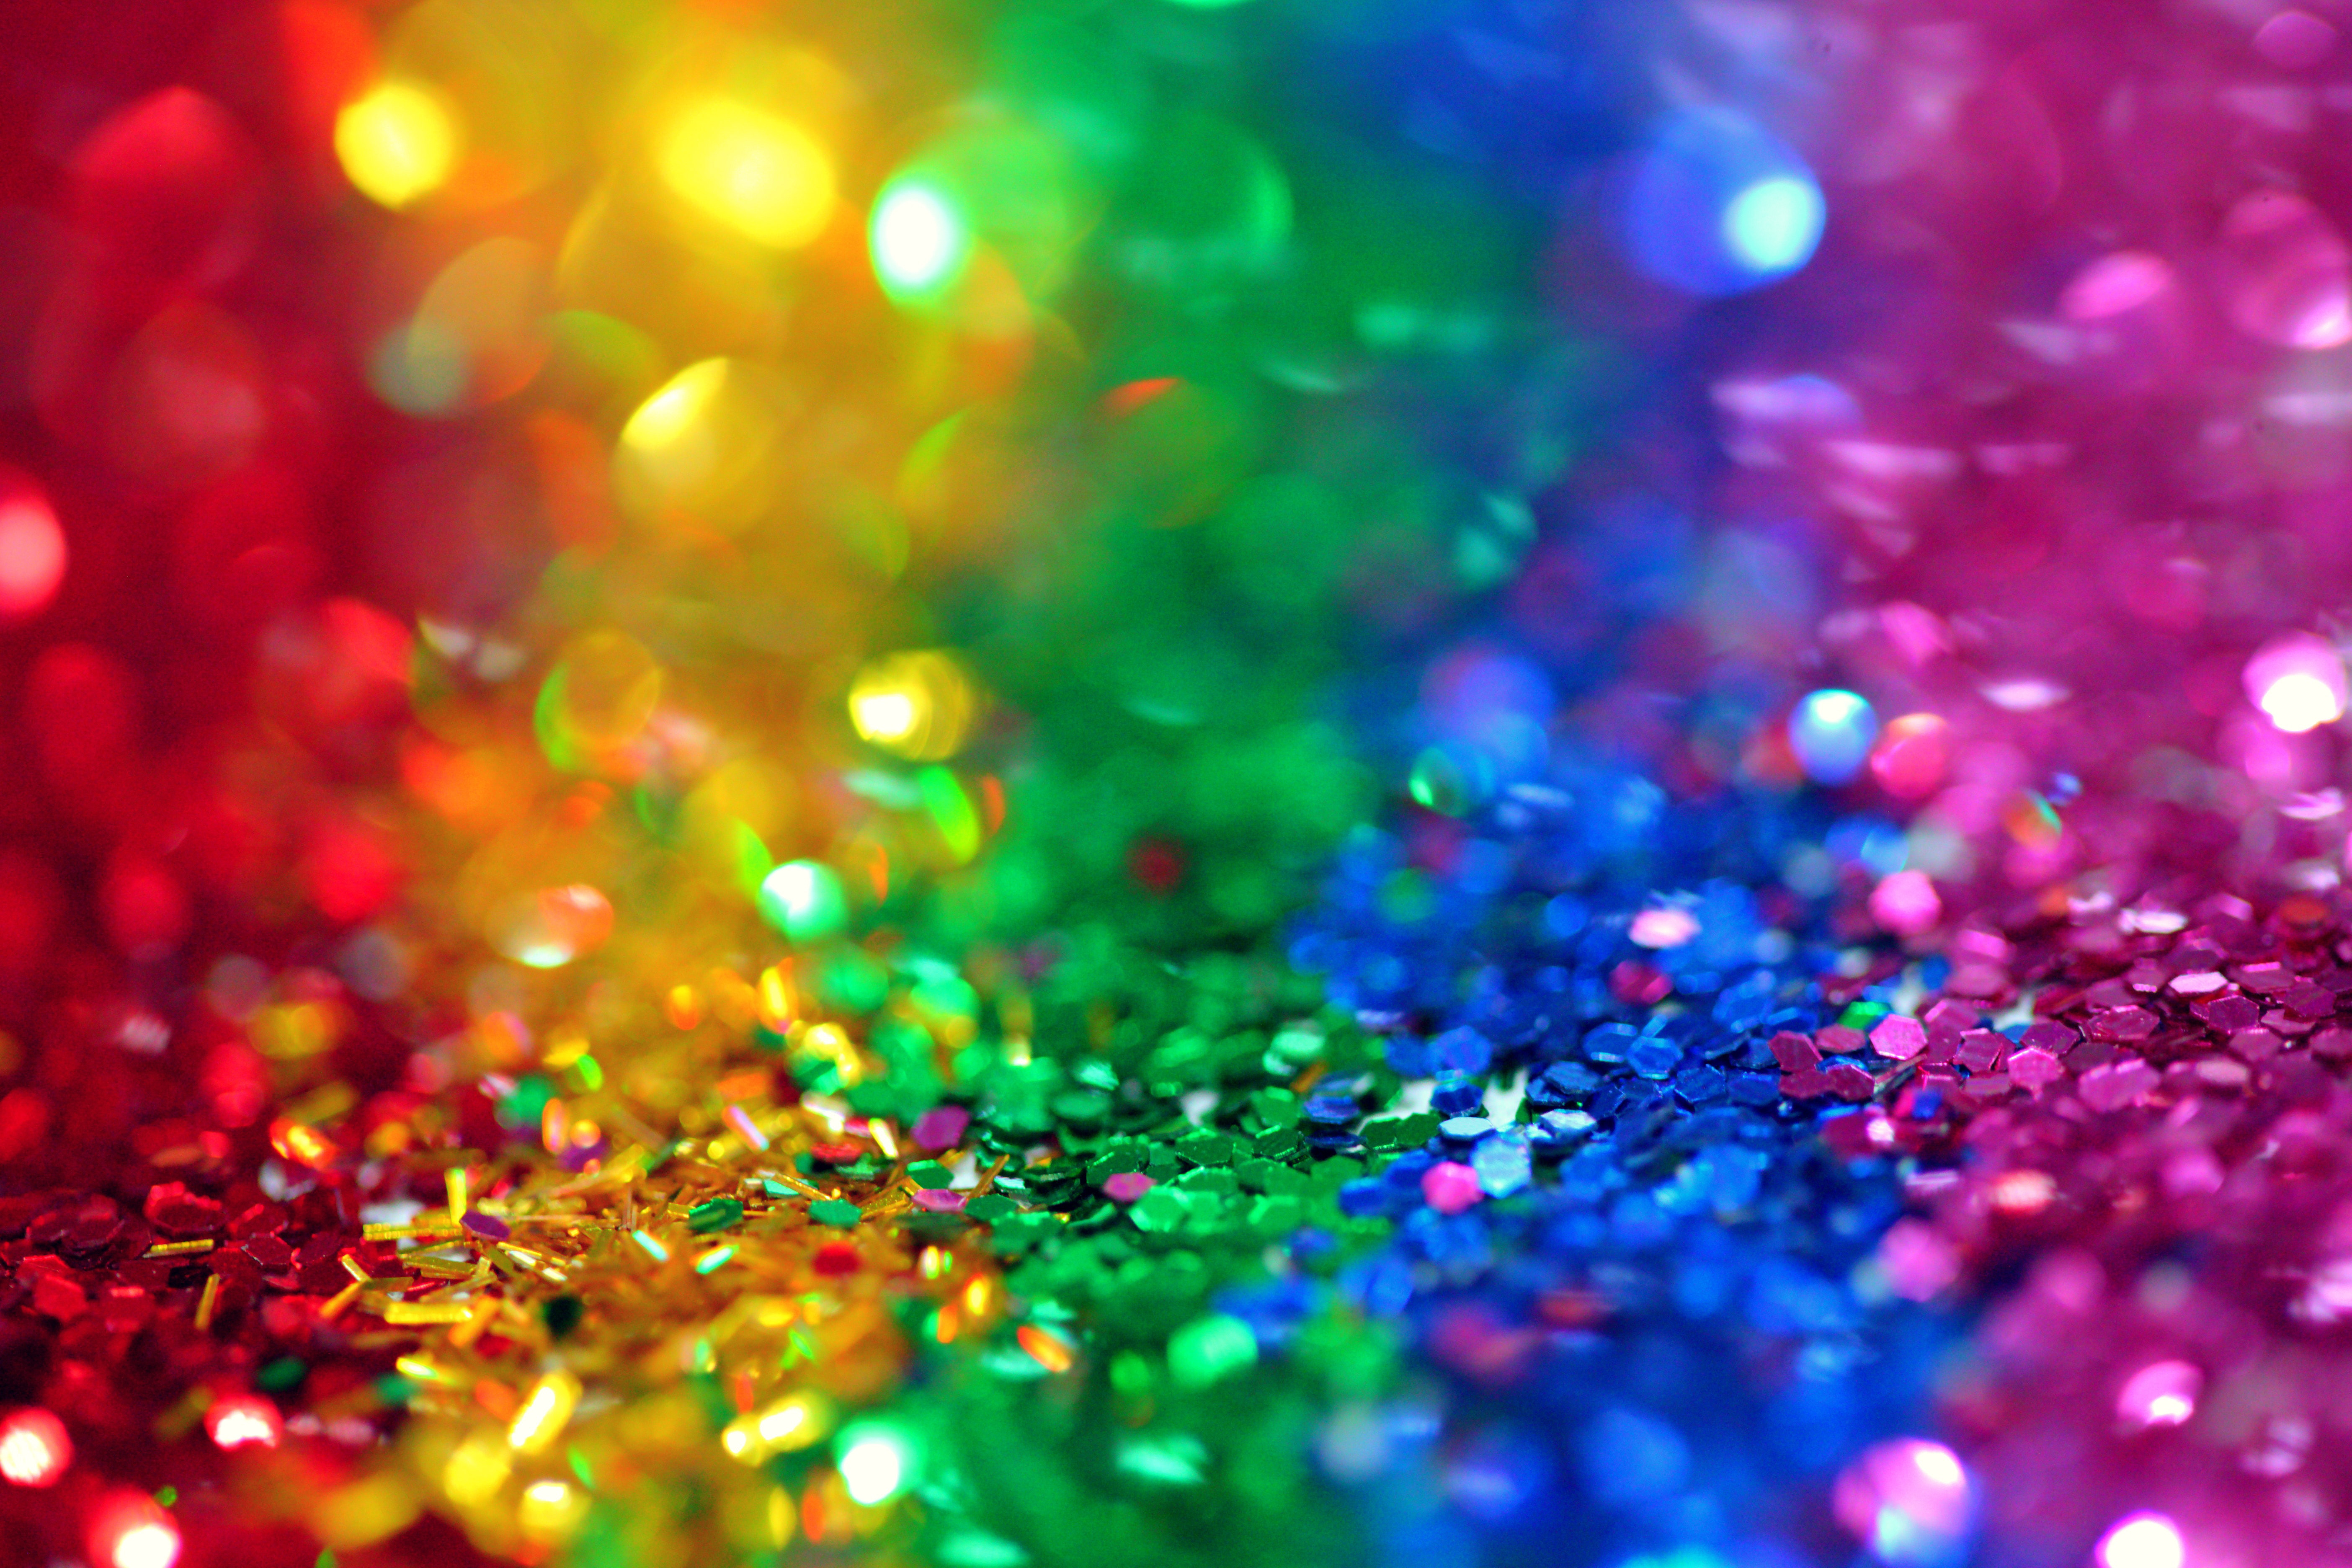 Materials background, bright, colorful, party, sparkle